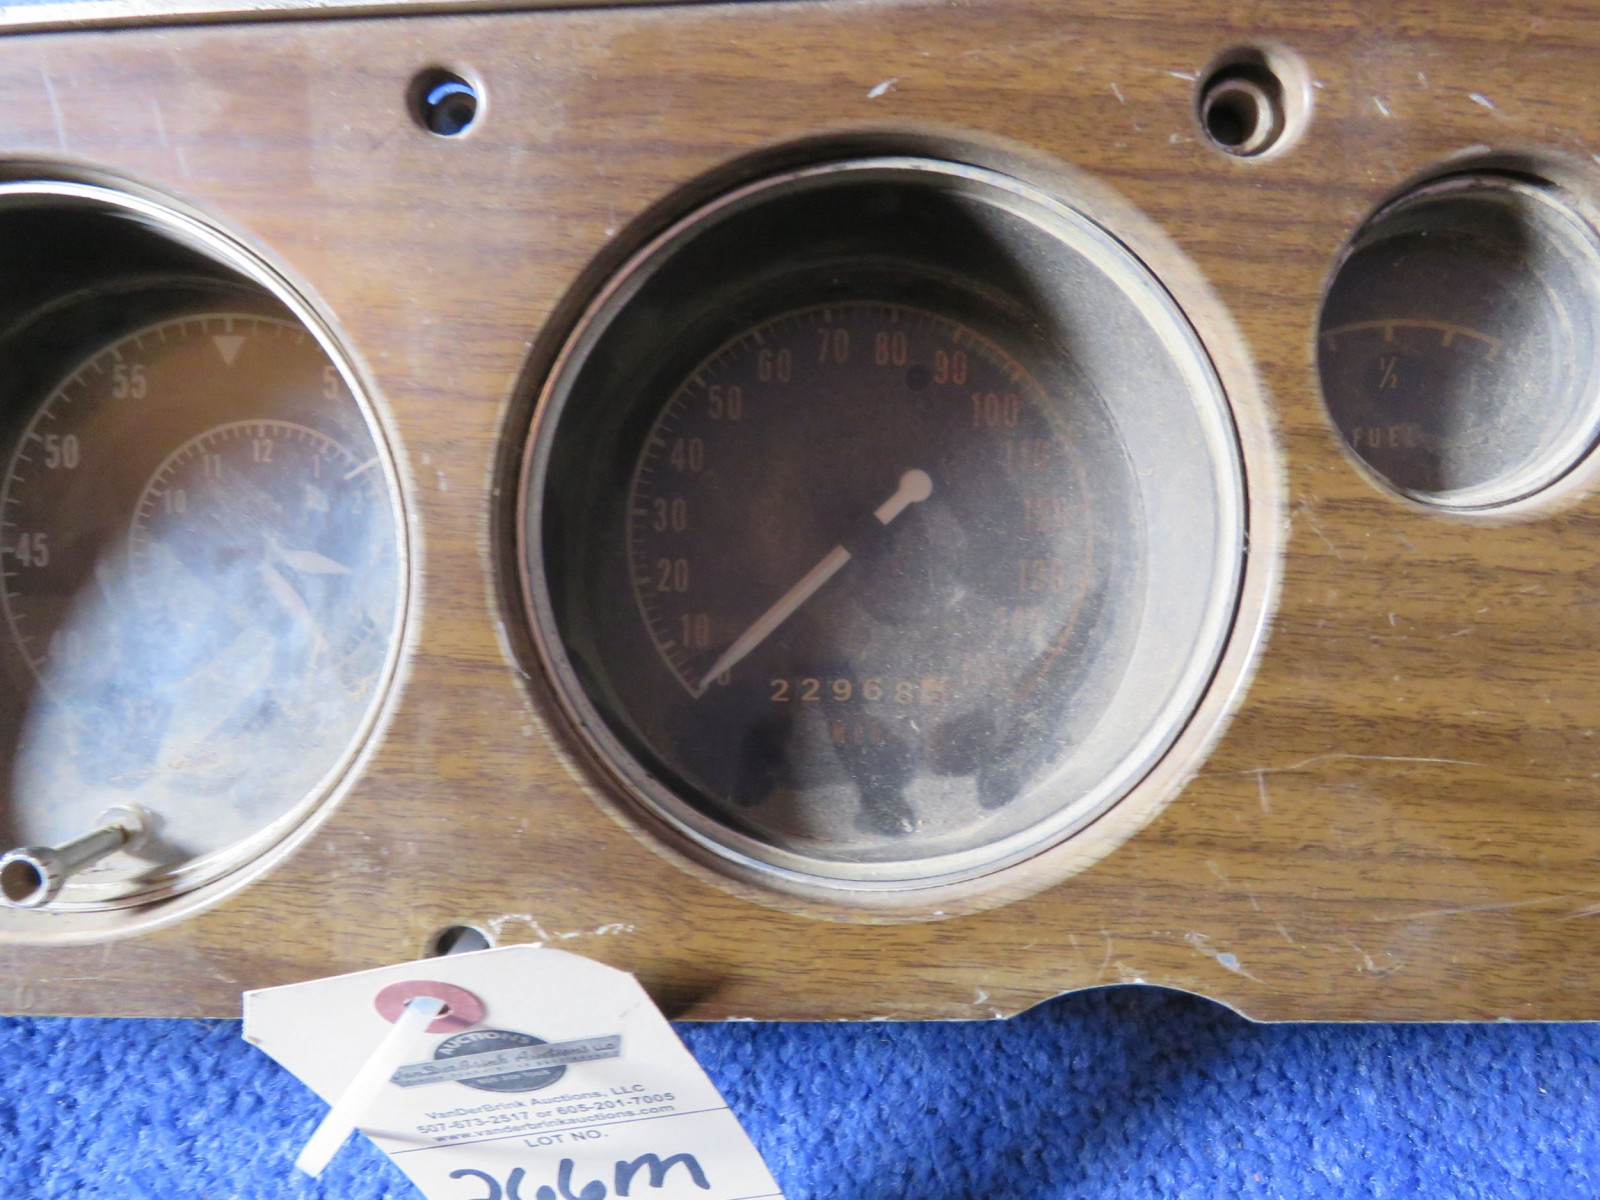 MOPAR B Body Ralley Dash Original with Tick Tach 150mph Speedometer - Image 3